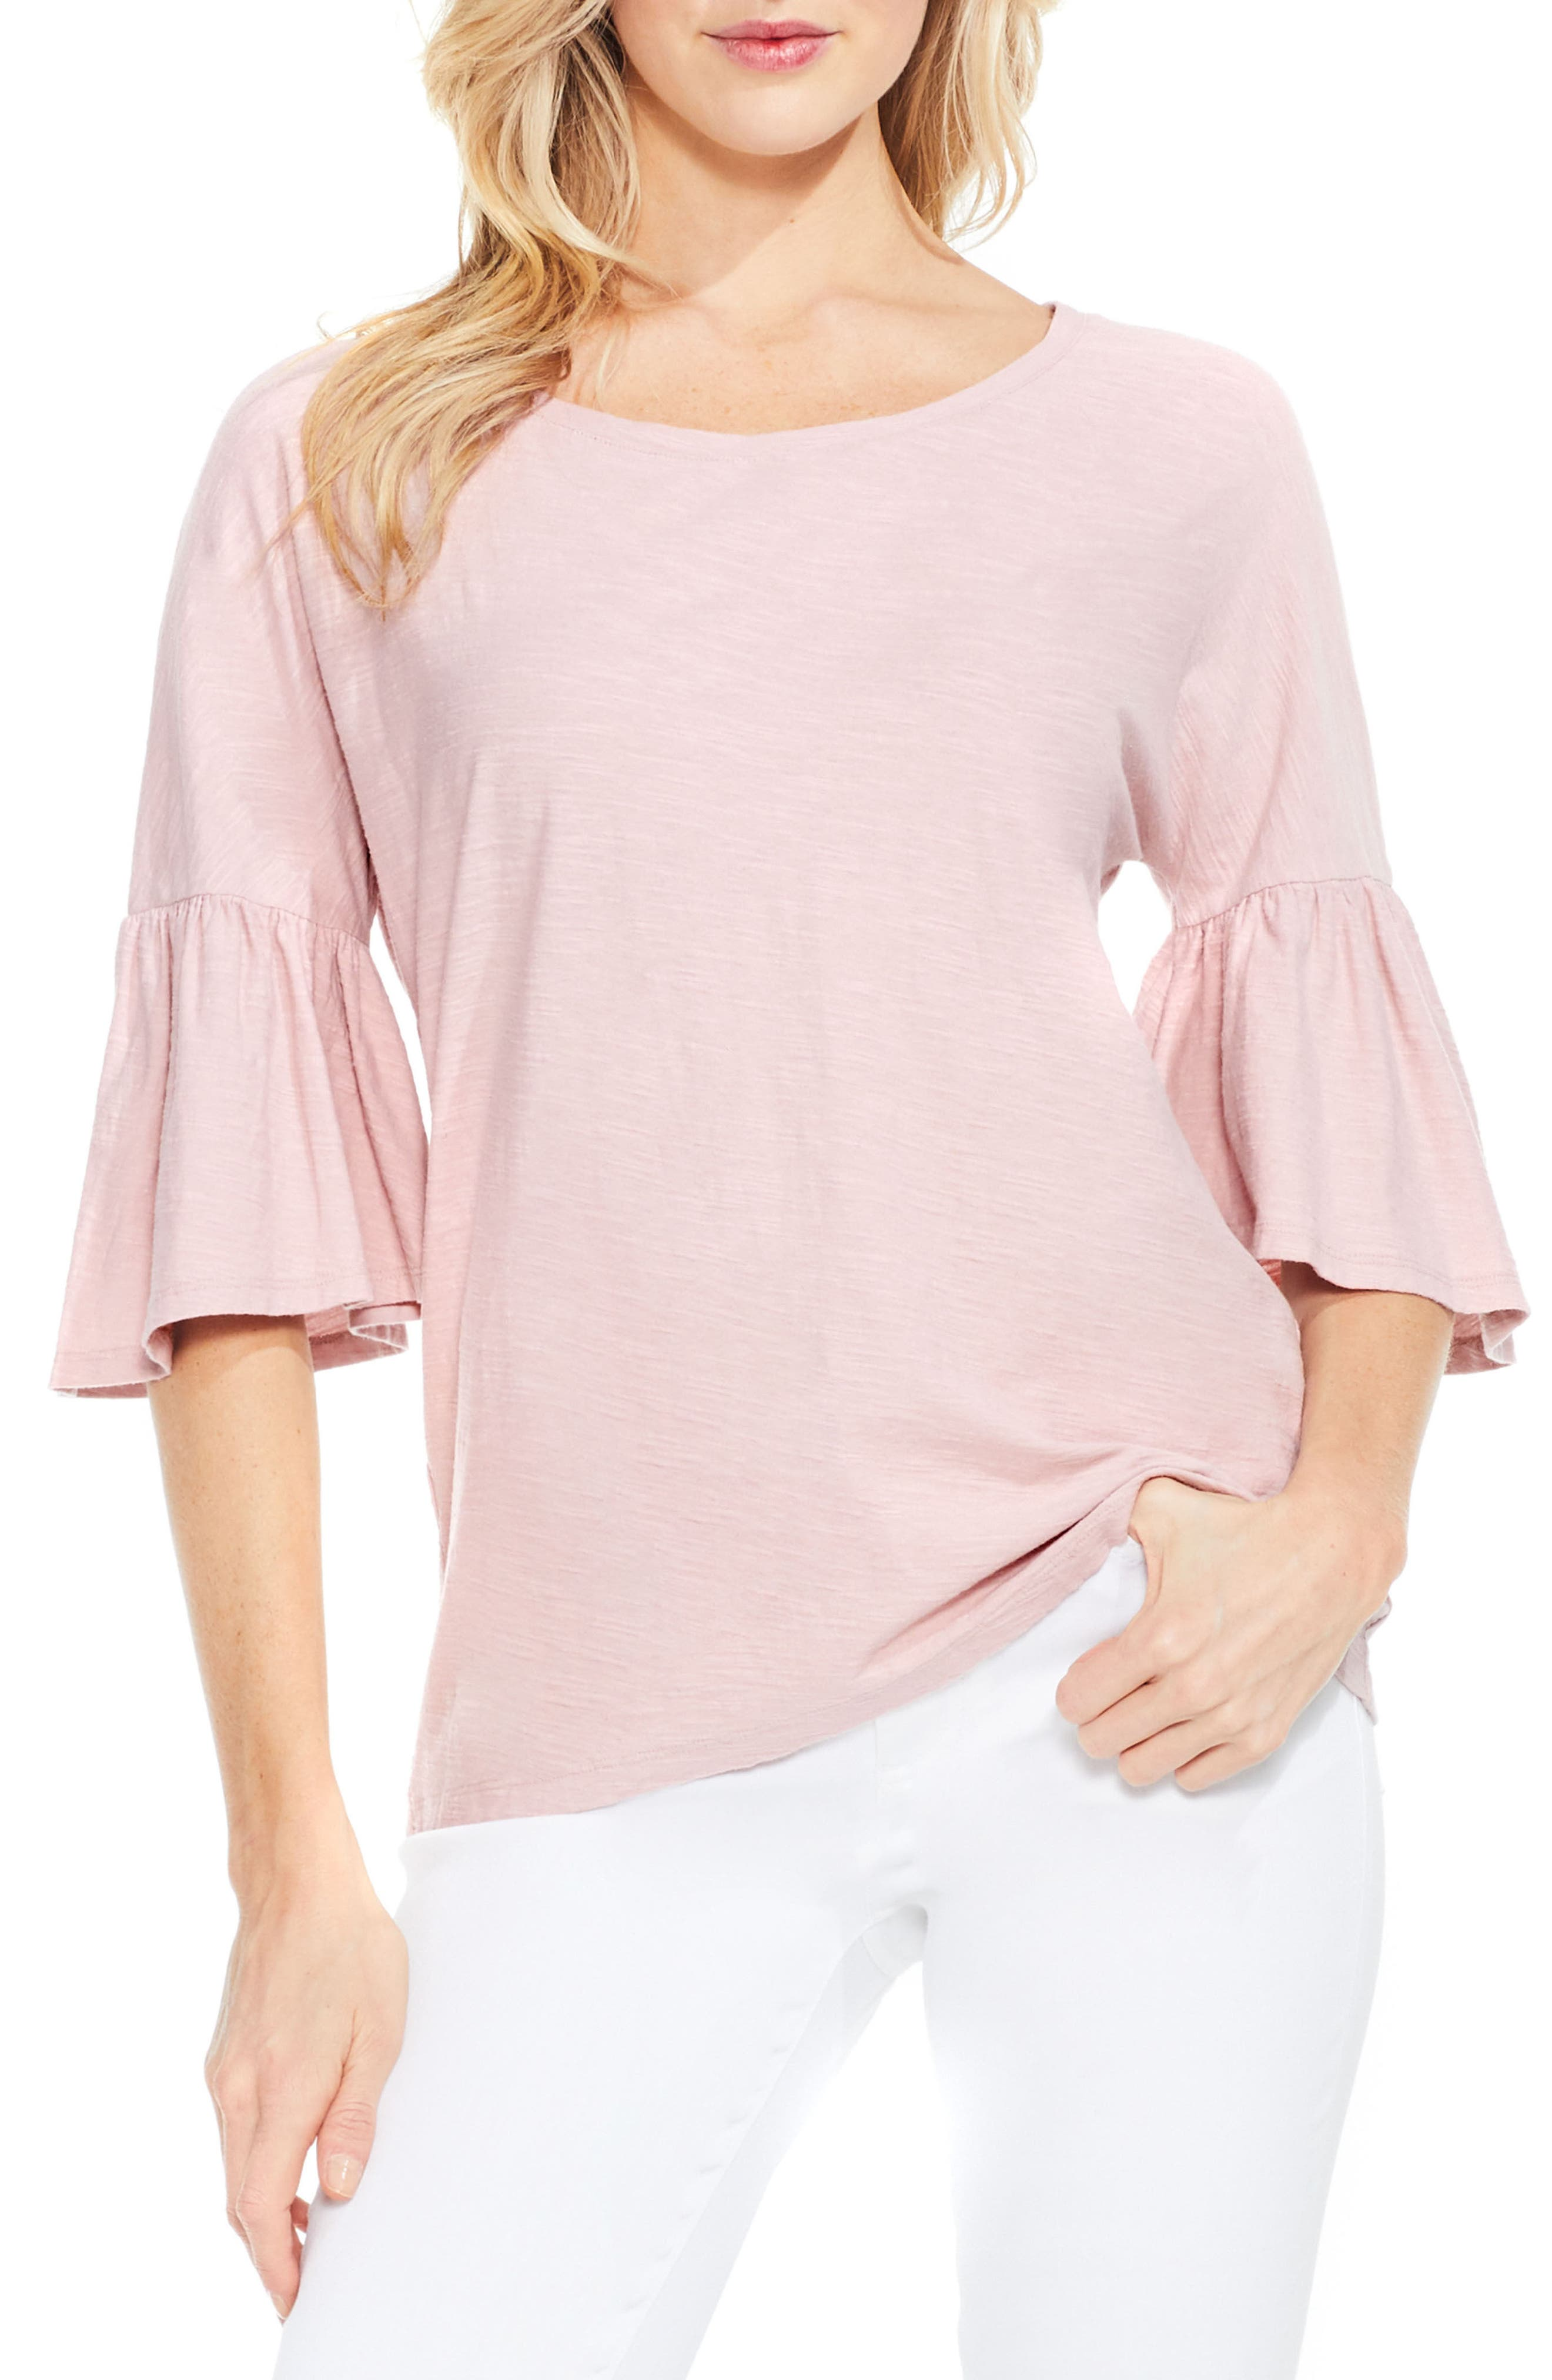 Main Image - Two by Vince Camuto Relaxed Bell Sleeve Cotton Tee